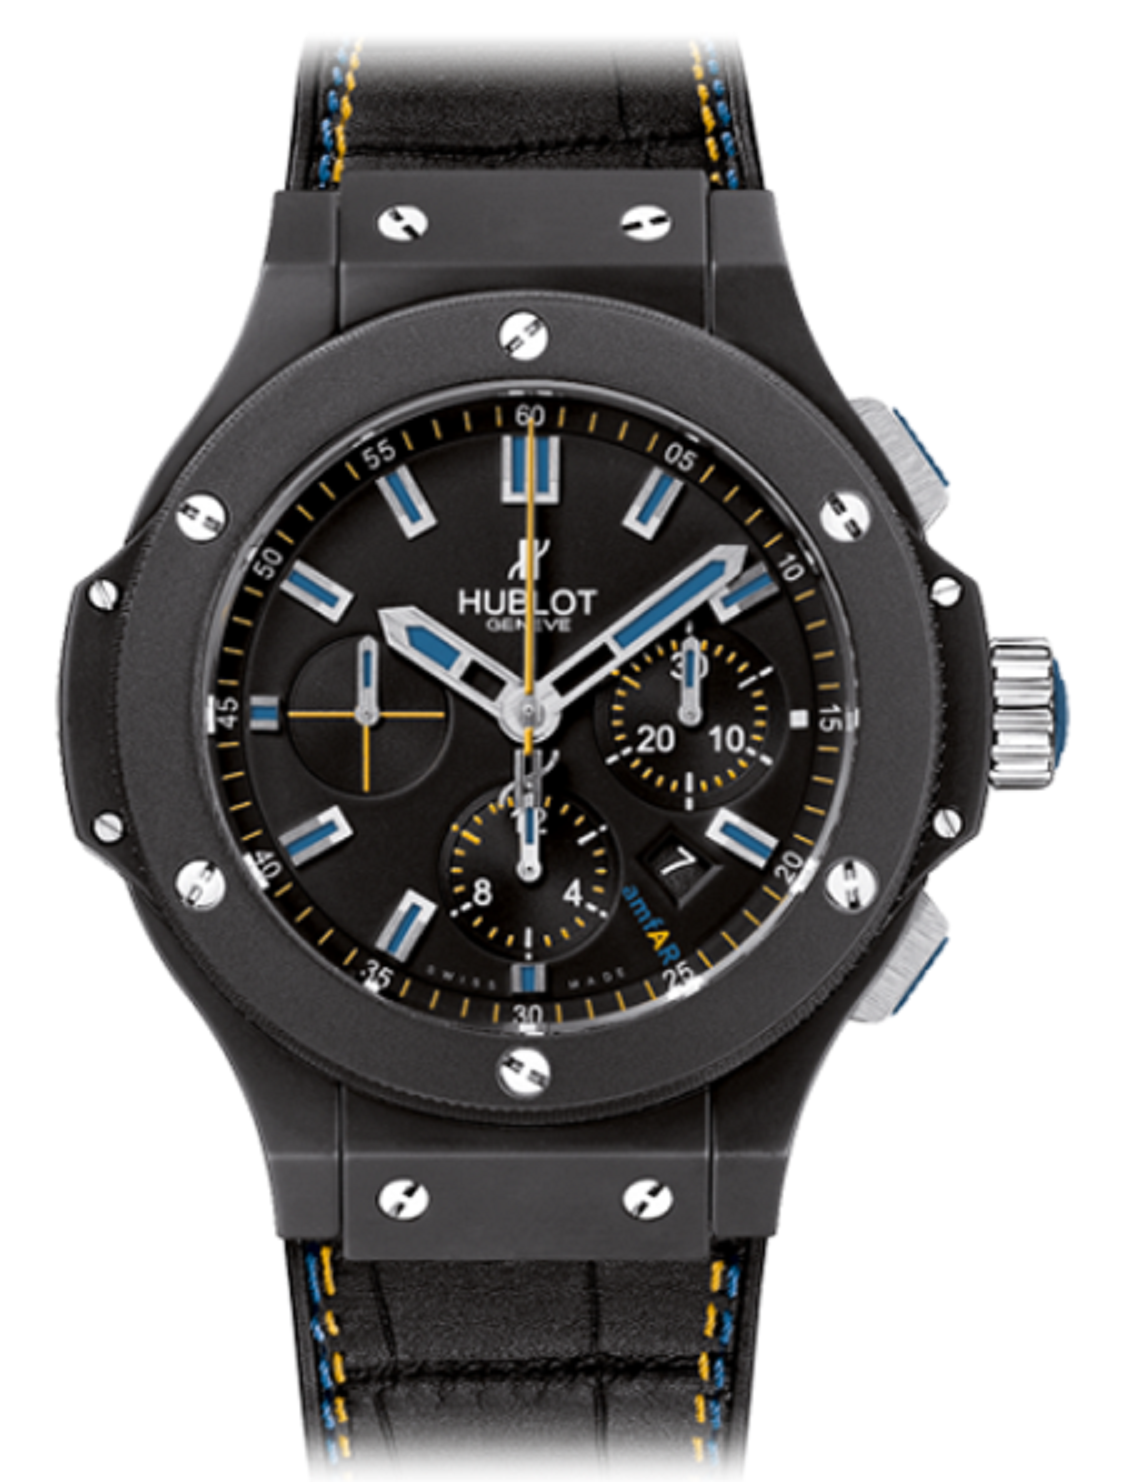 Hublot Big Bang 44mm Amfar In Black Ceramic -Limited Edition of 100 Pieces